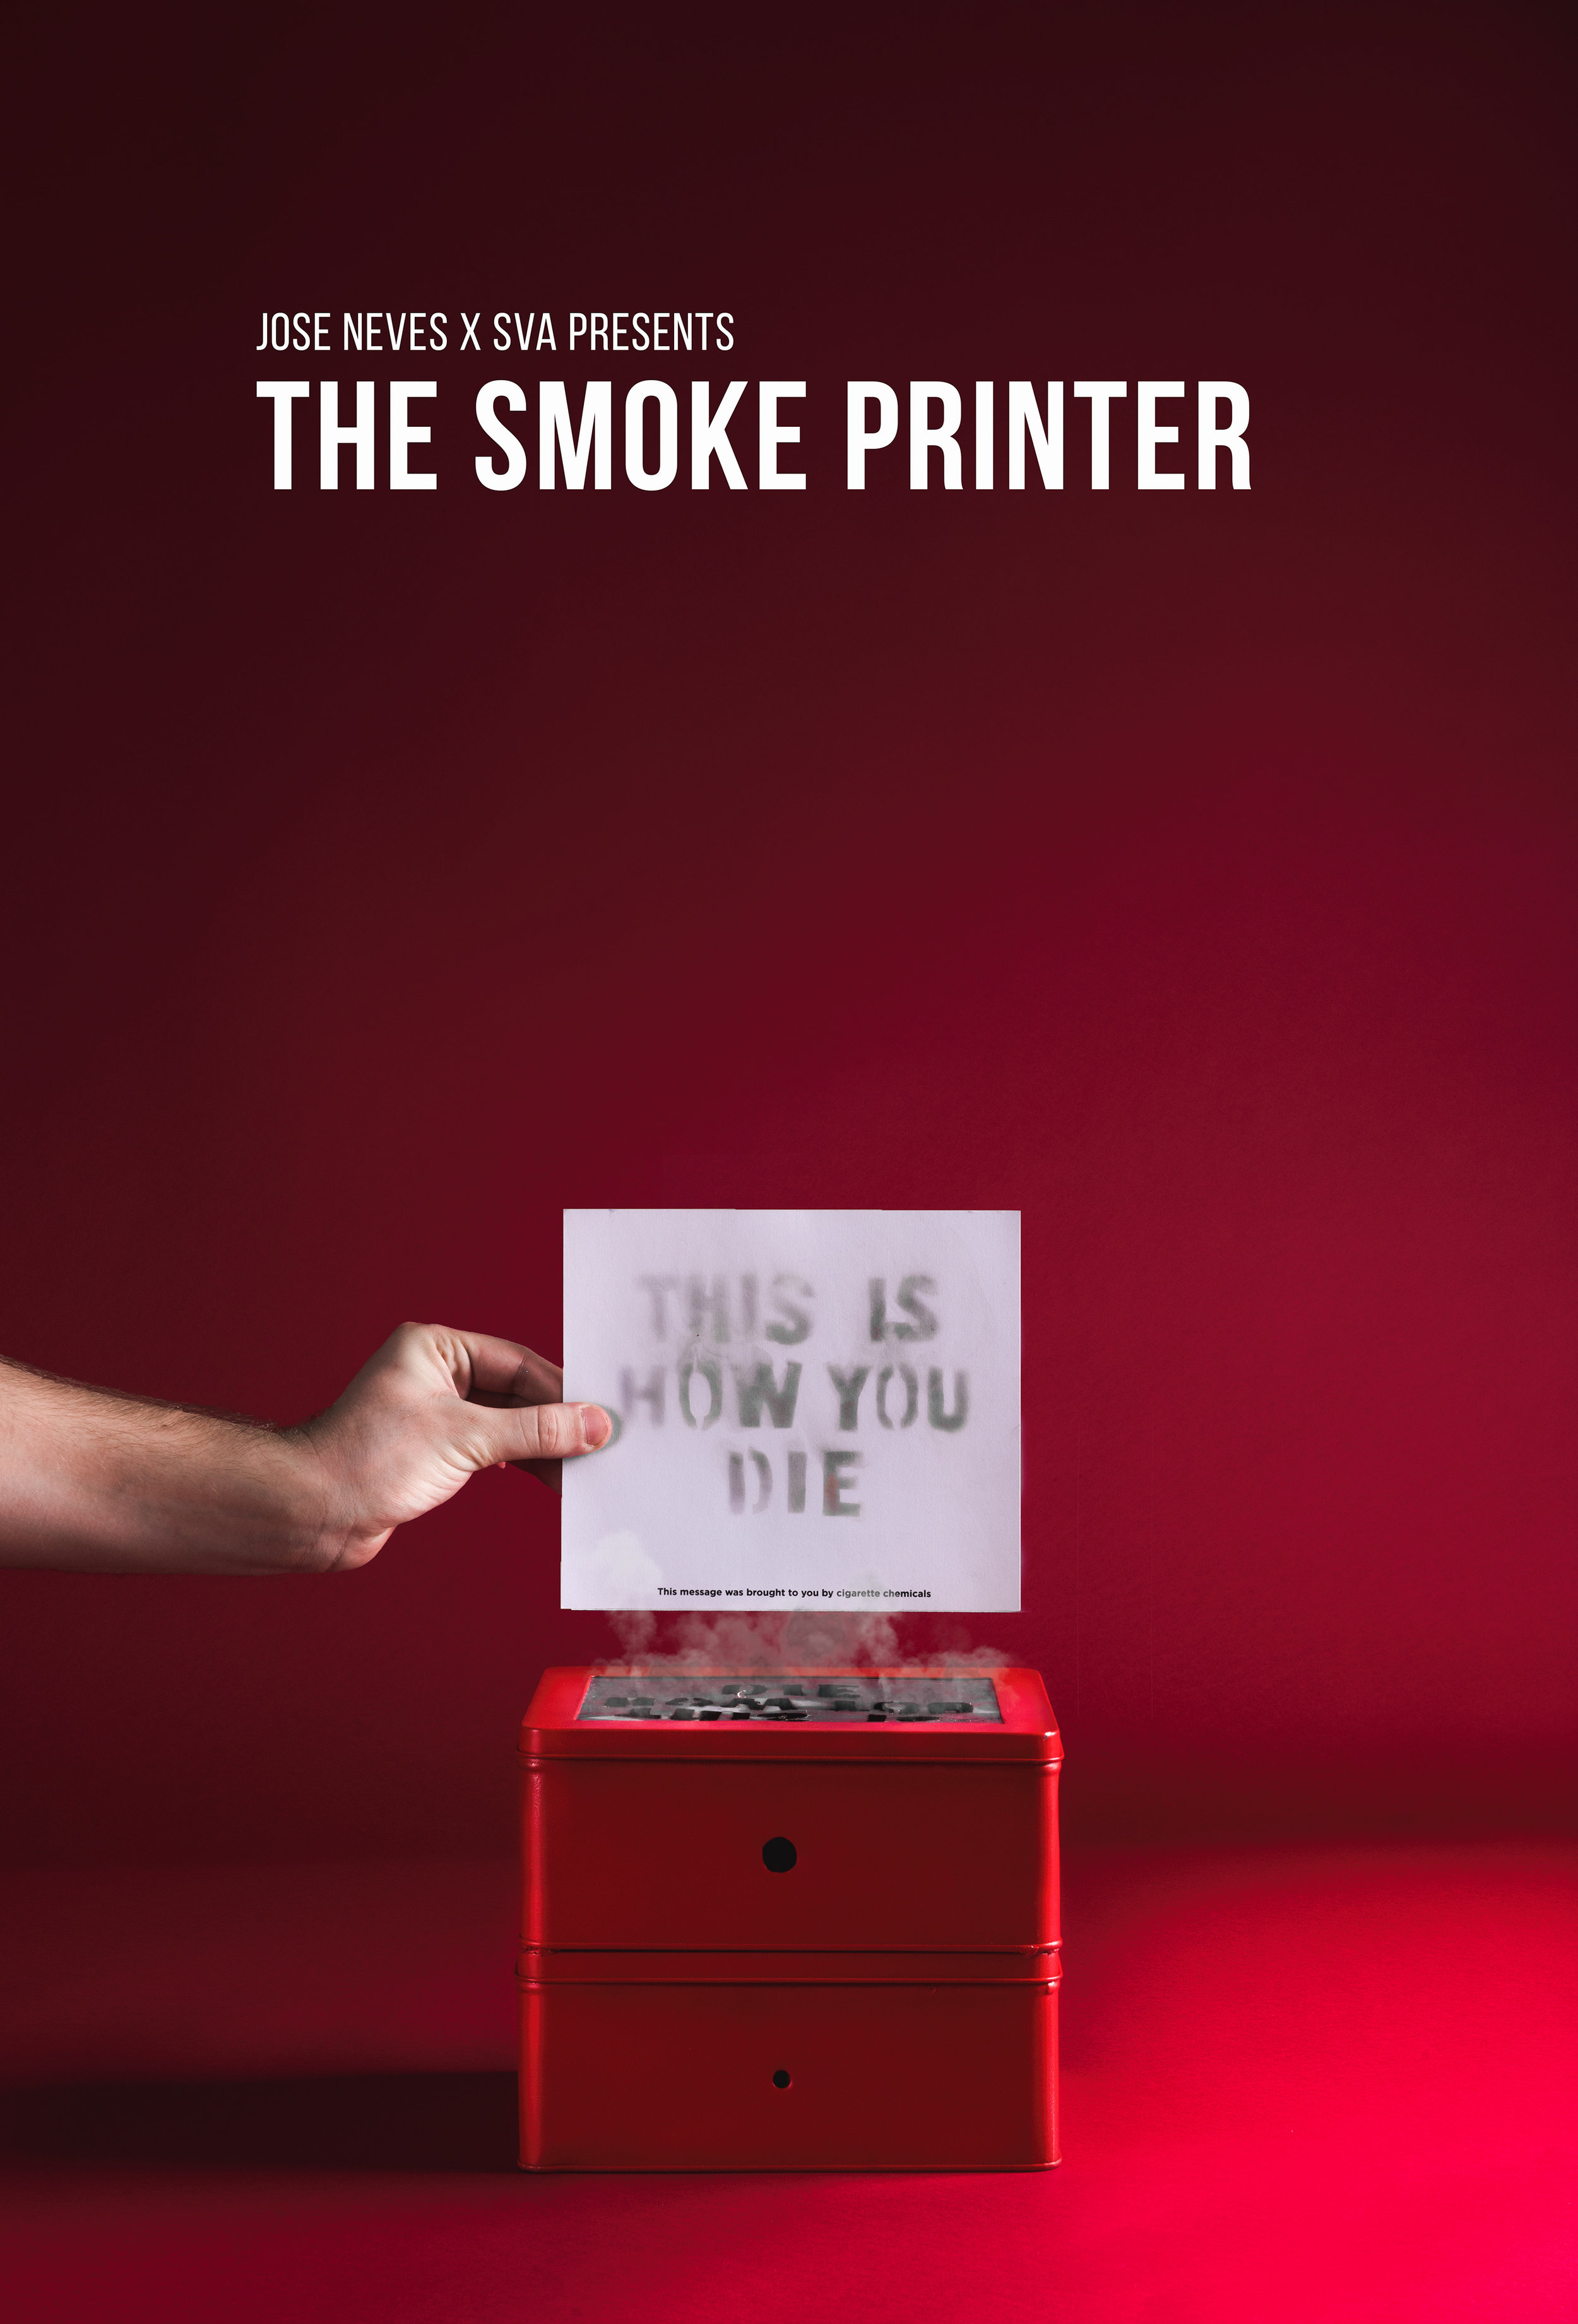 Smoke Printer   An anti-cigarette campaign featuring a powerful quote printed by cigarette chemicals on a smoke printer.  Best in Show at the Type Directors Club 2017.